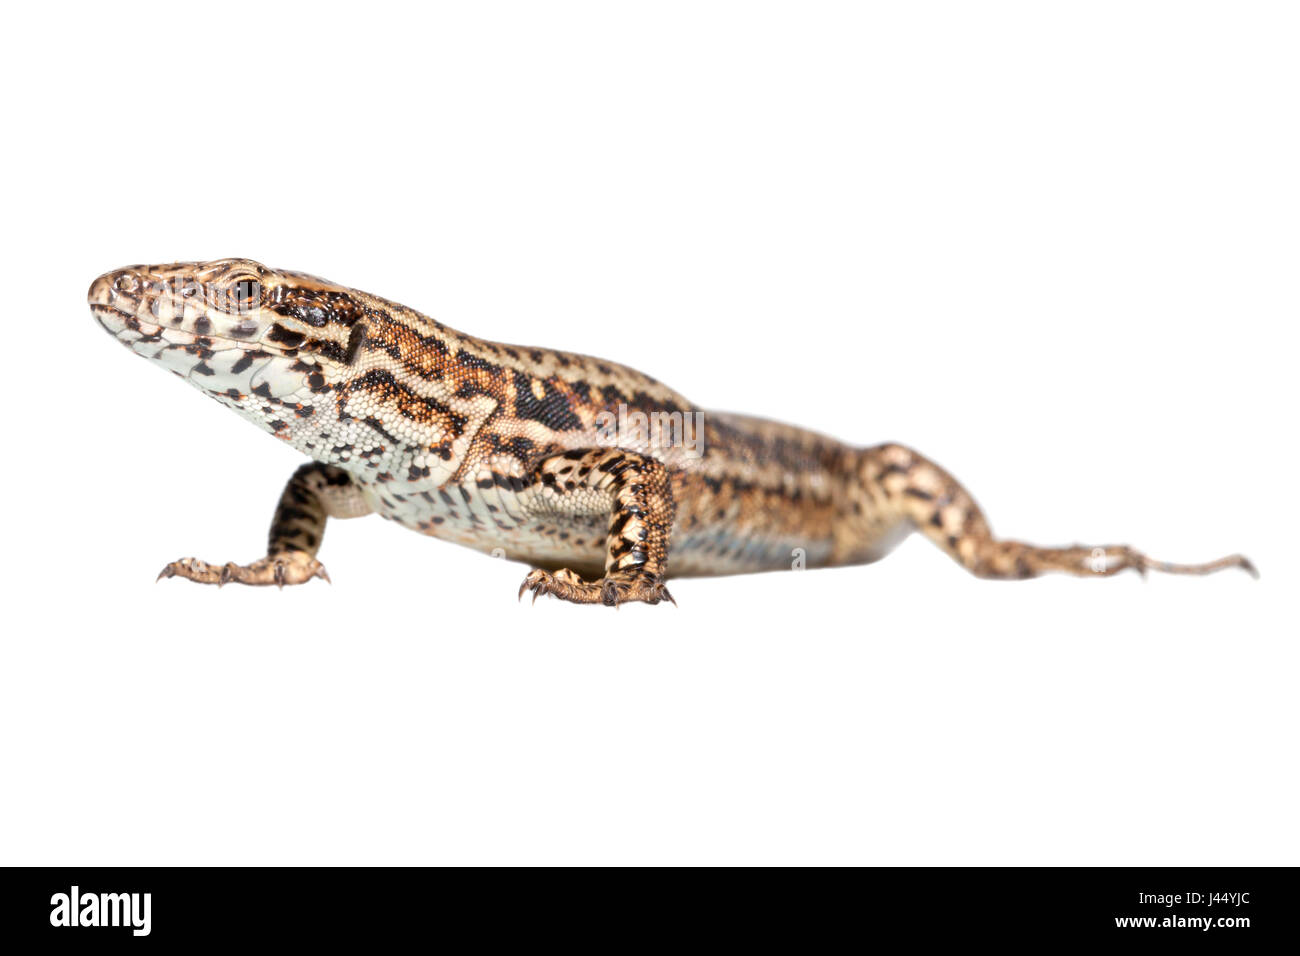 rendered photo of a common wall lizard - Stock Image